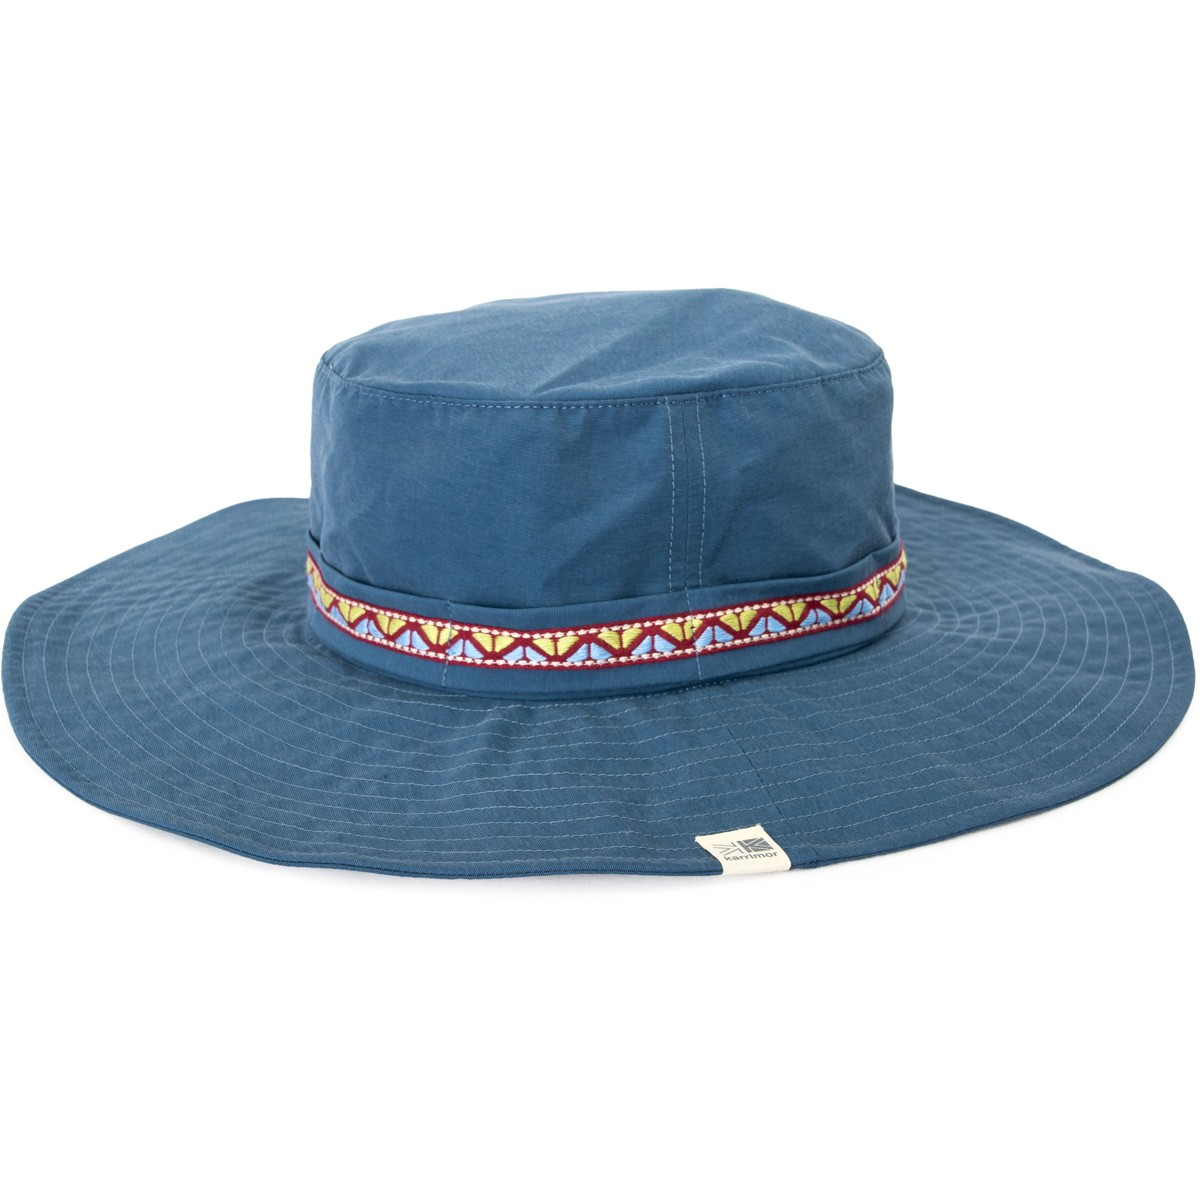 karrimor safari hat